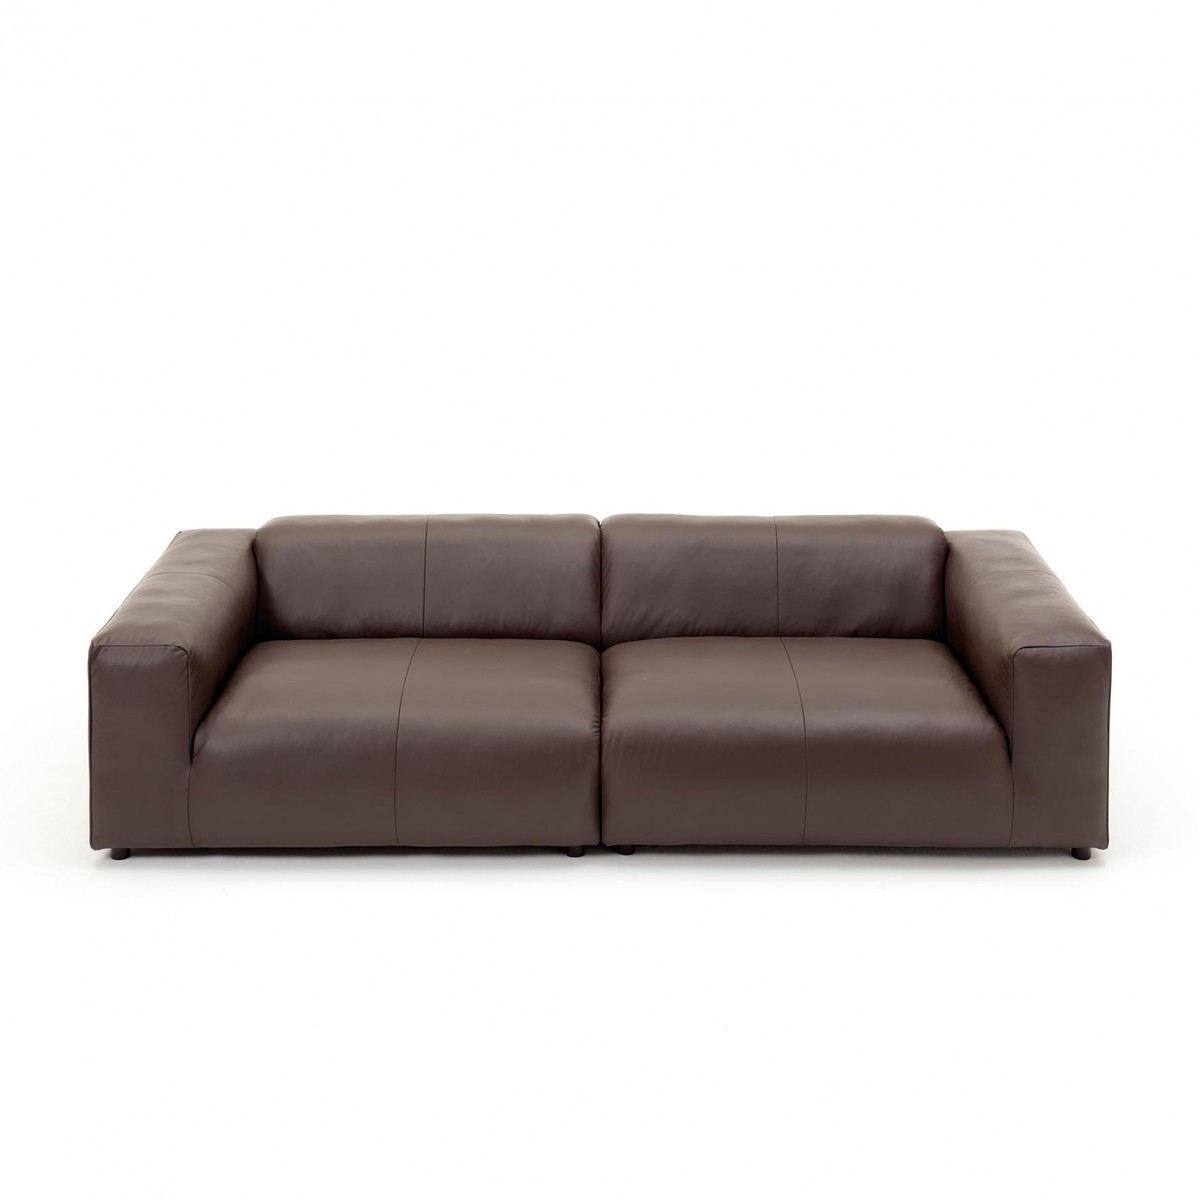 Ledersofa rolf benz  freistil 187 3-Seater Leather Sofa | freistil Rolf Benz ...